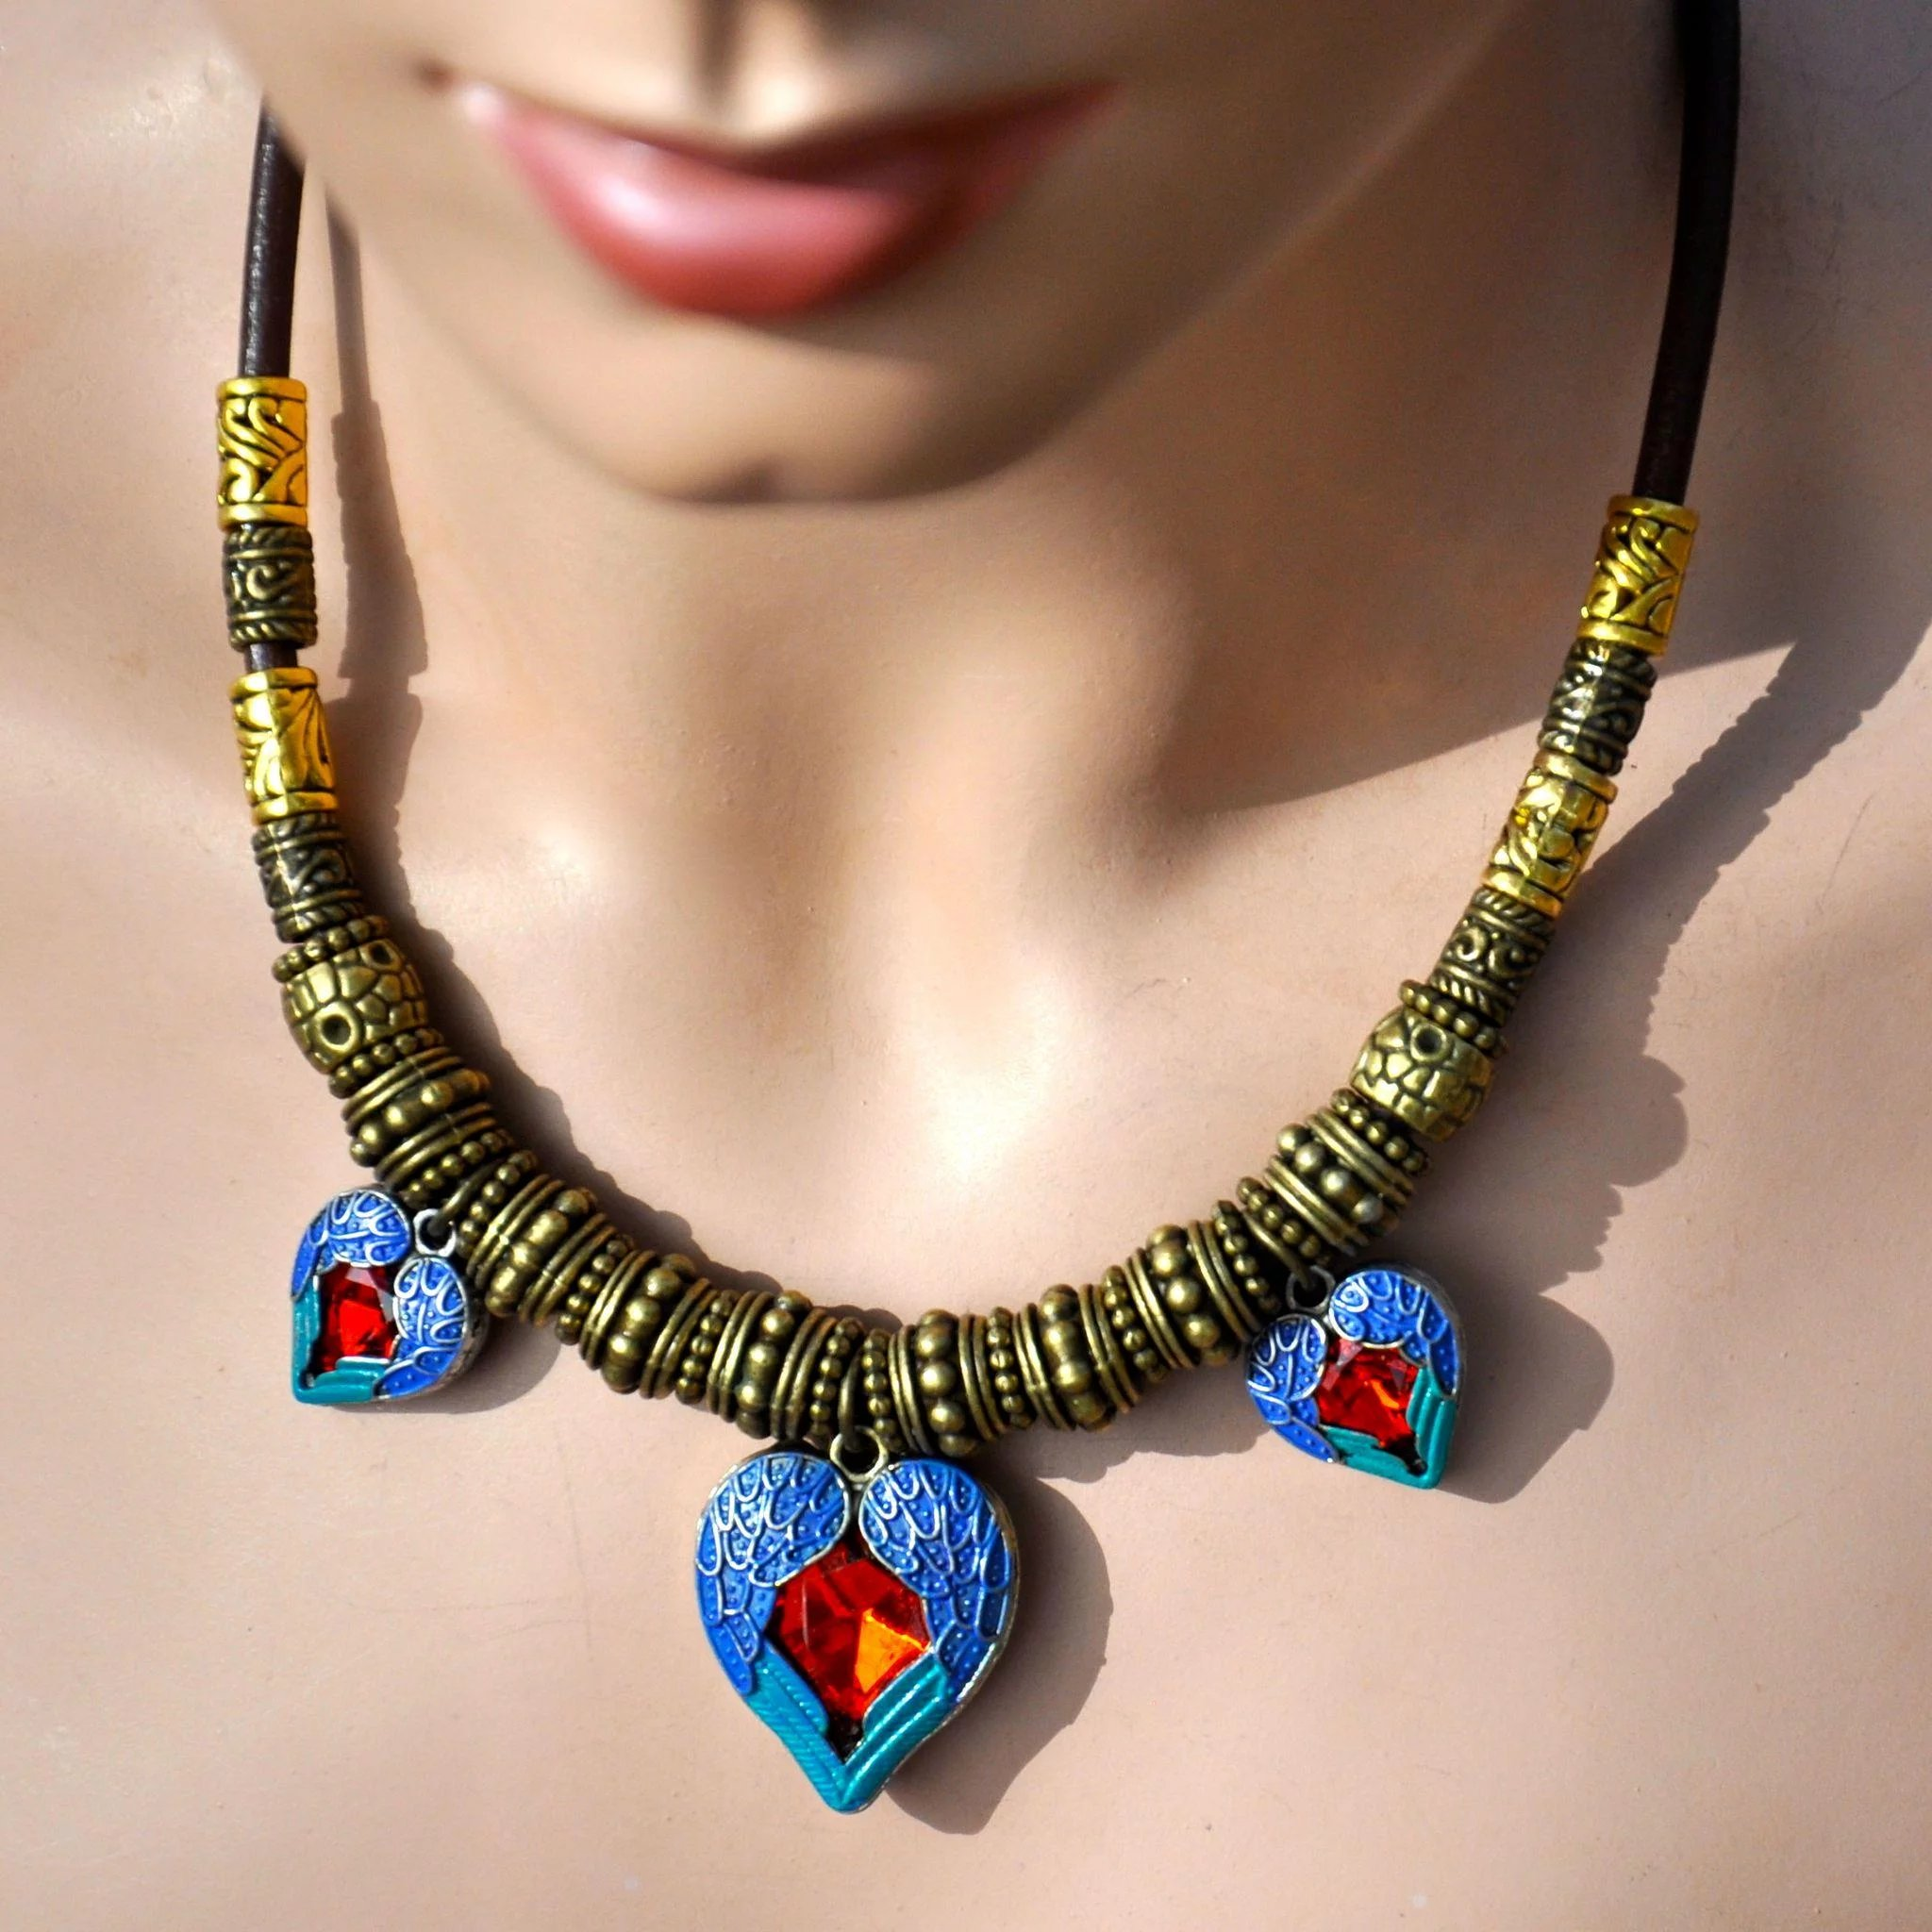 Three Hearts Necklace on Greek Leather : B.BOLD Jewelry for Boomer Girls | Ruby Lane